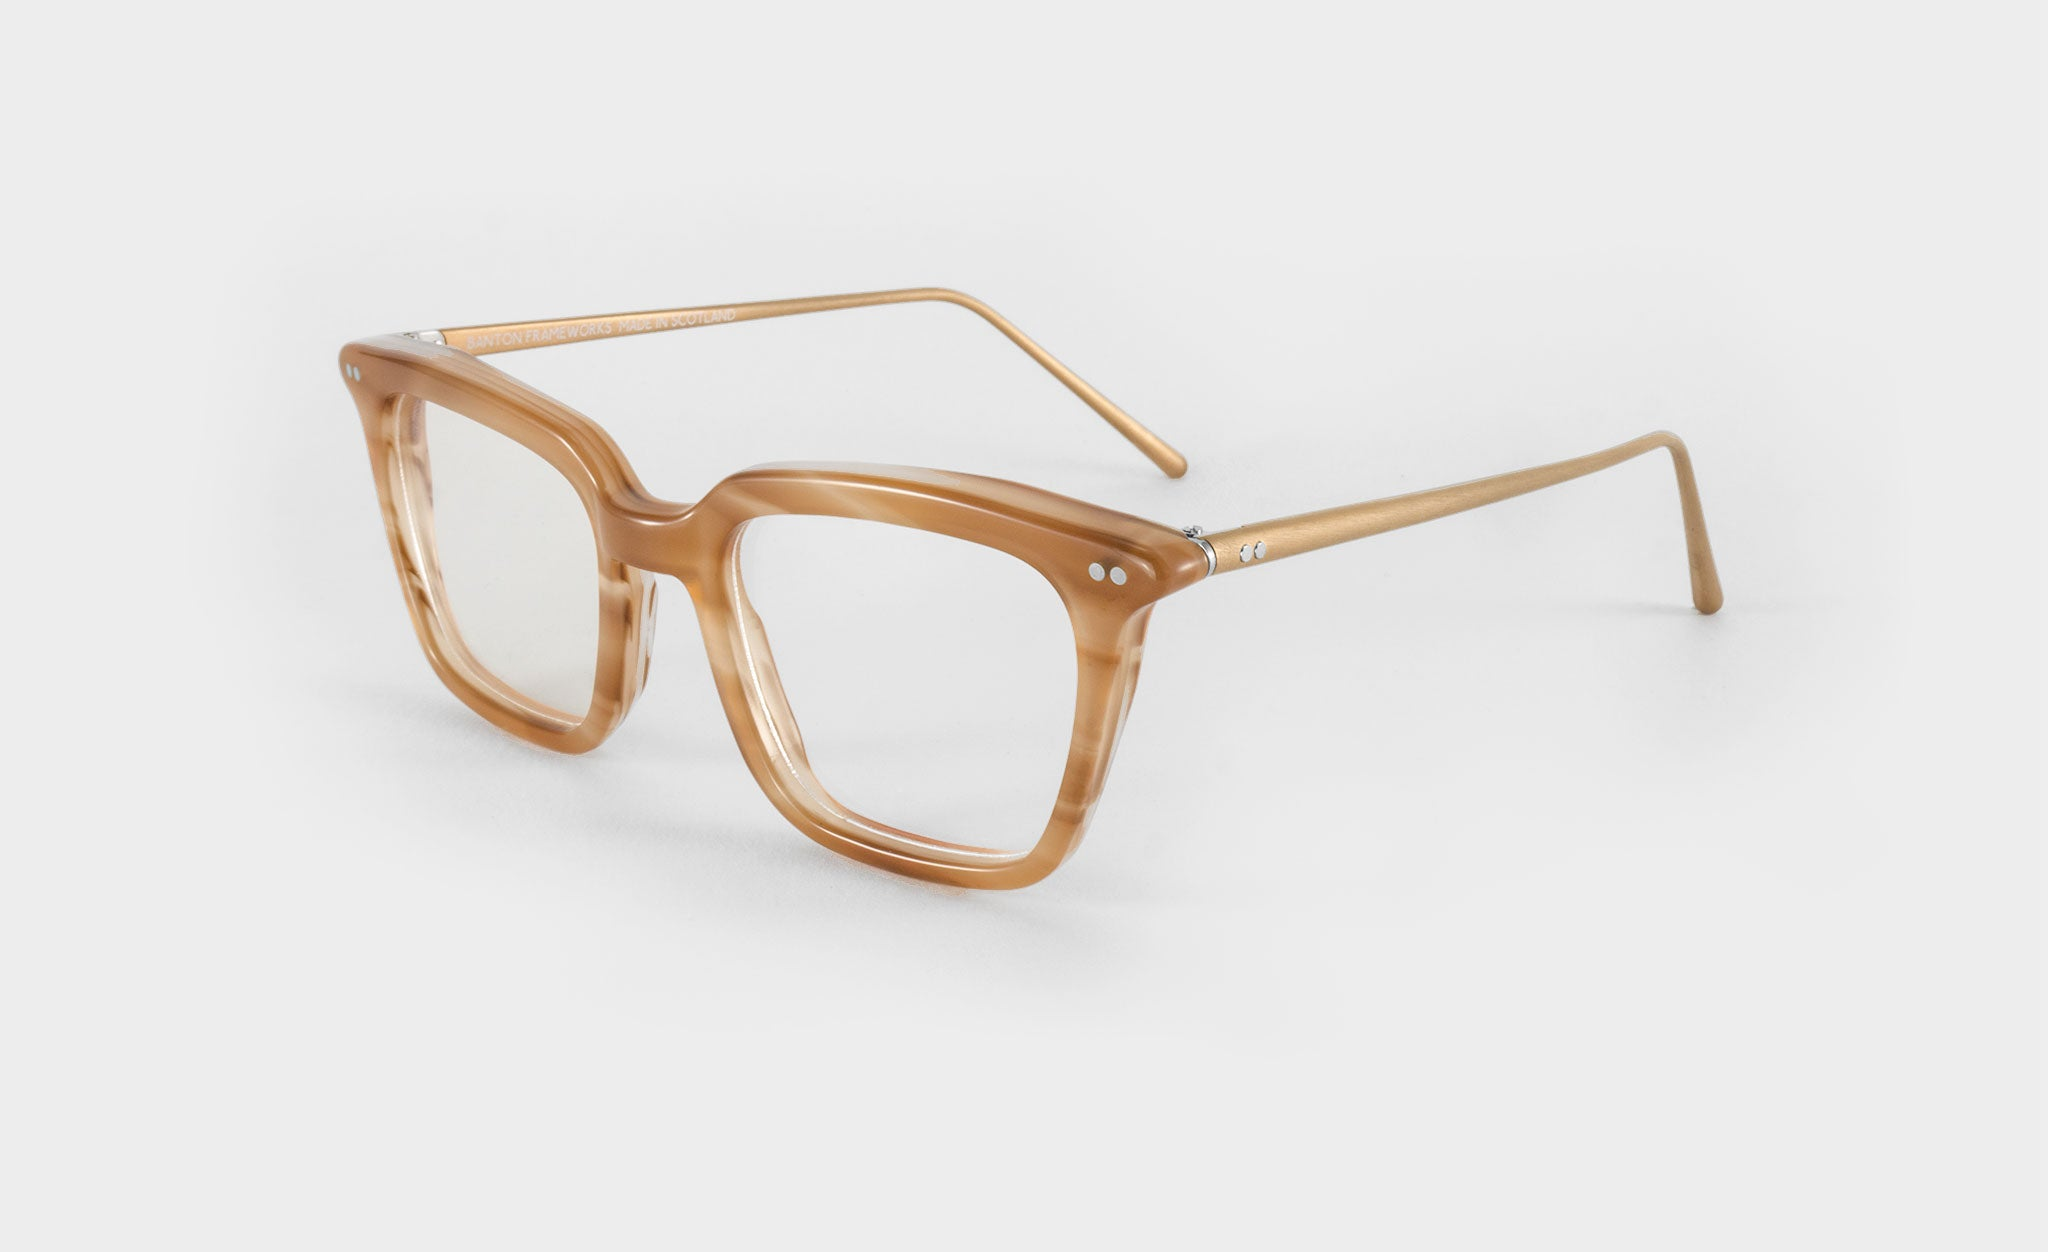 mens-glasses-e-rd-side-view